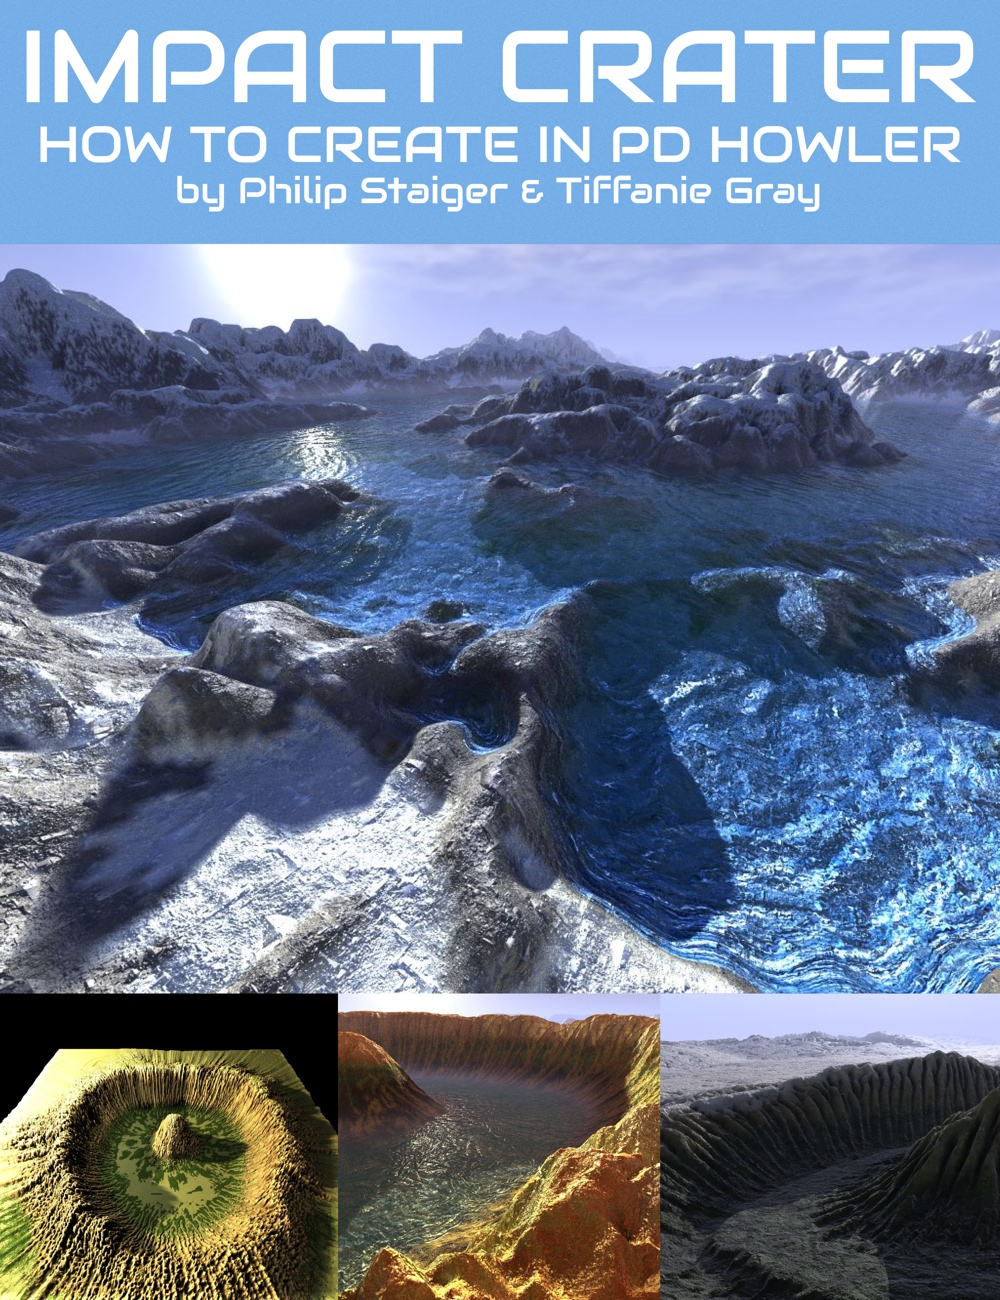 How to Create a 3D Impact Crater Scene in PD Howler by: Digital Art Live, 3D Models by Daz 3D